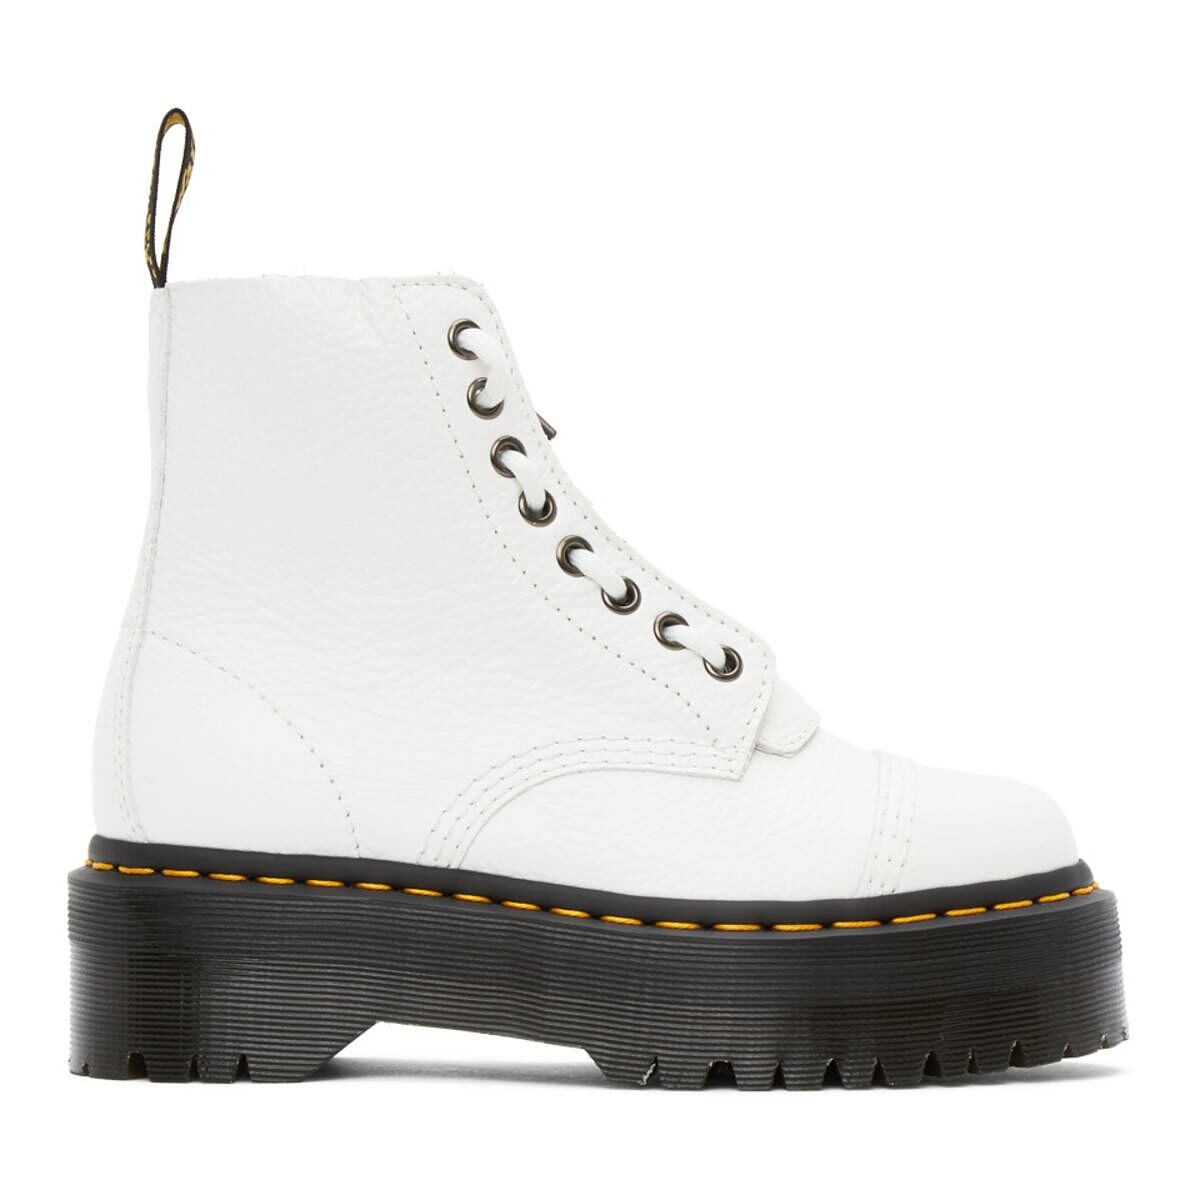 Dr. Martens White Sinclair Zip Boots Ssense USA WOMEN Women SHOES Womens ANKLE BOOTS